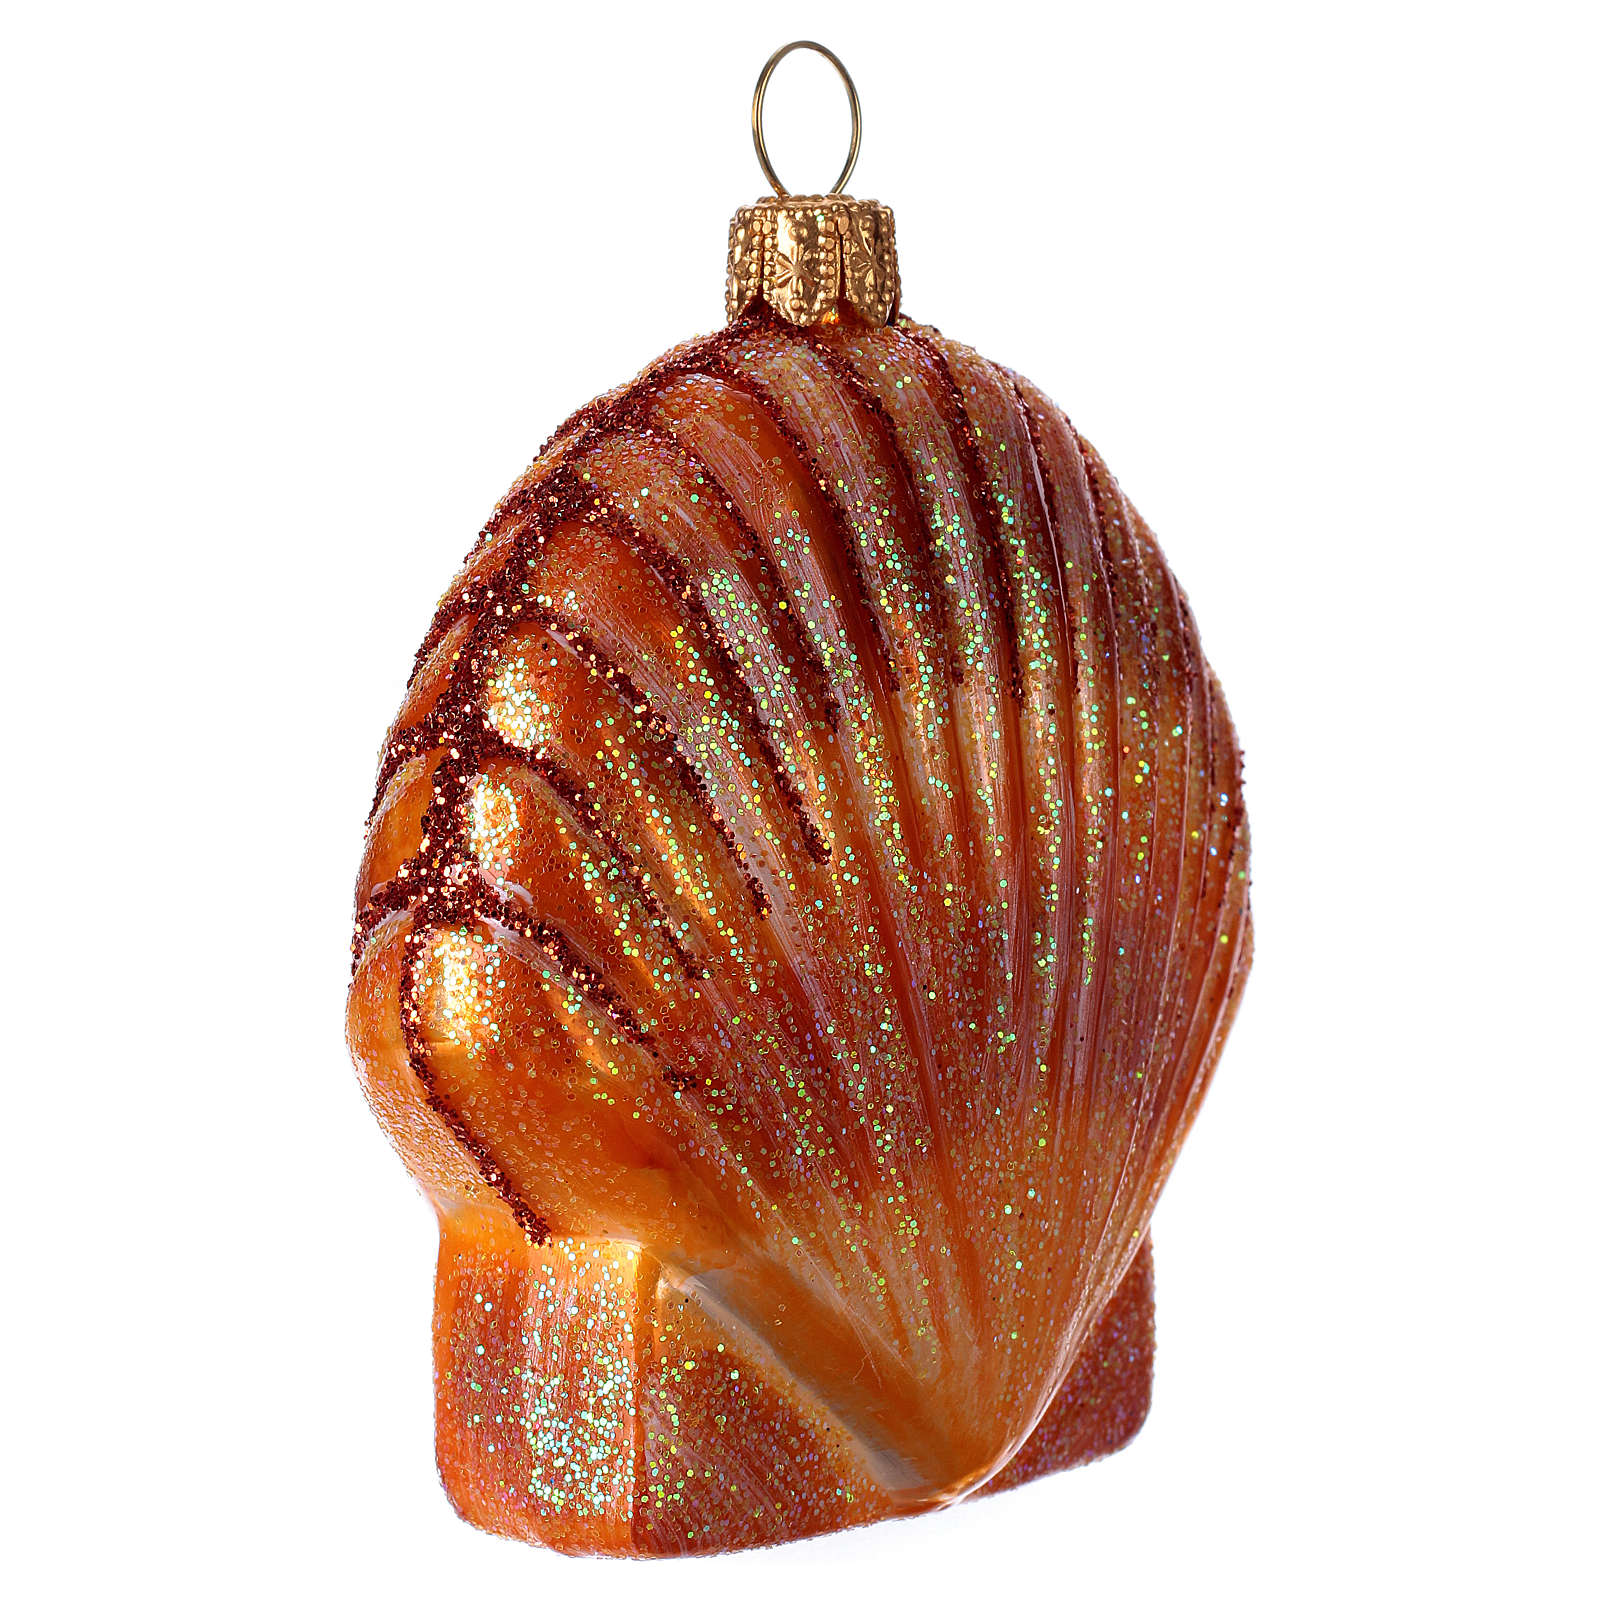 Blown glass Christmas ornament, orange shell 4